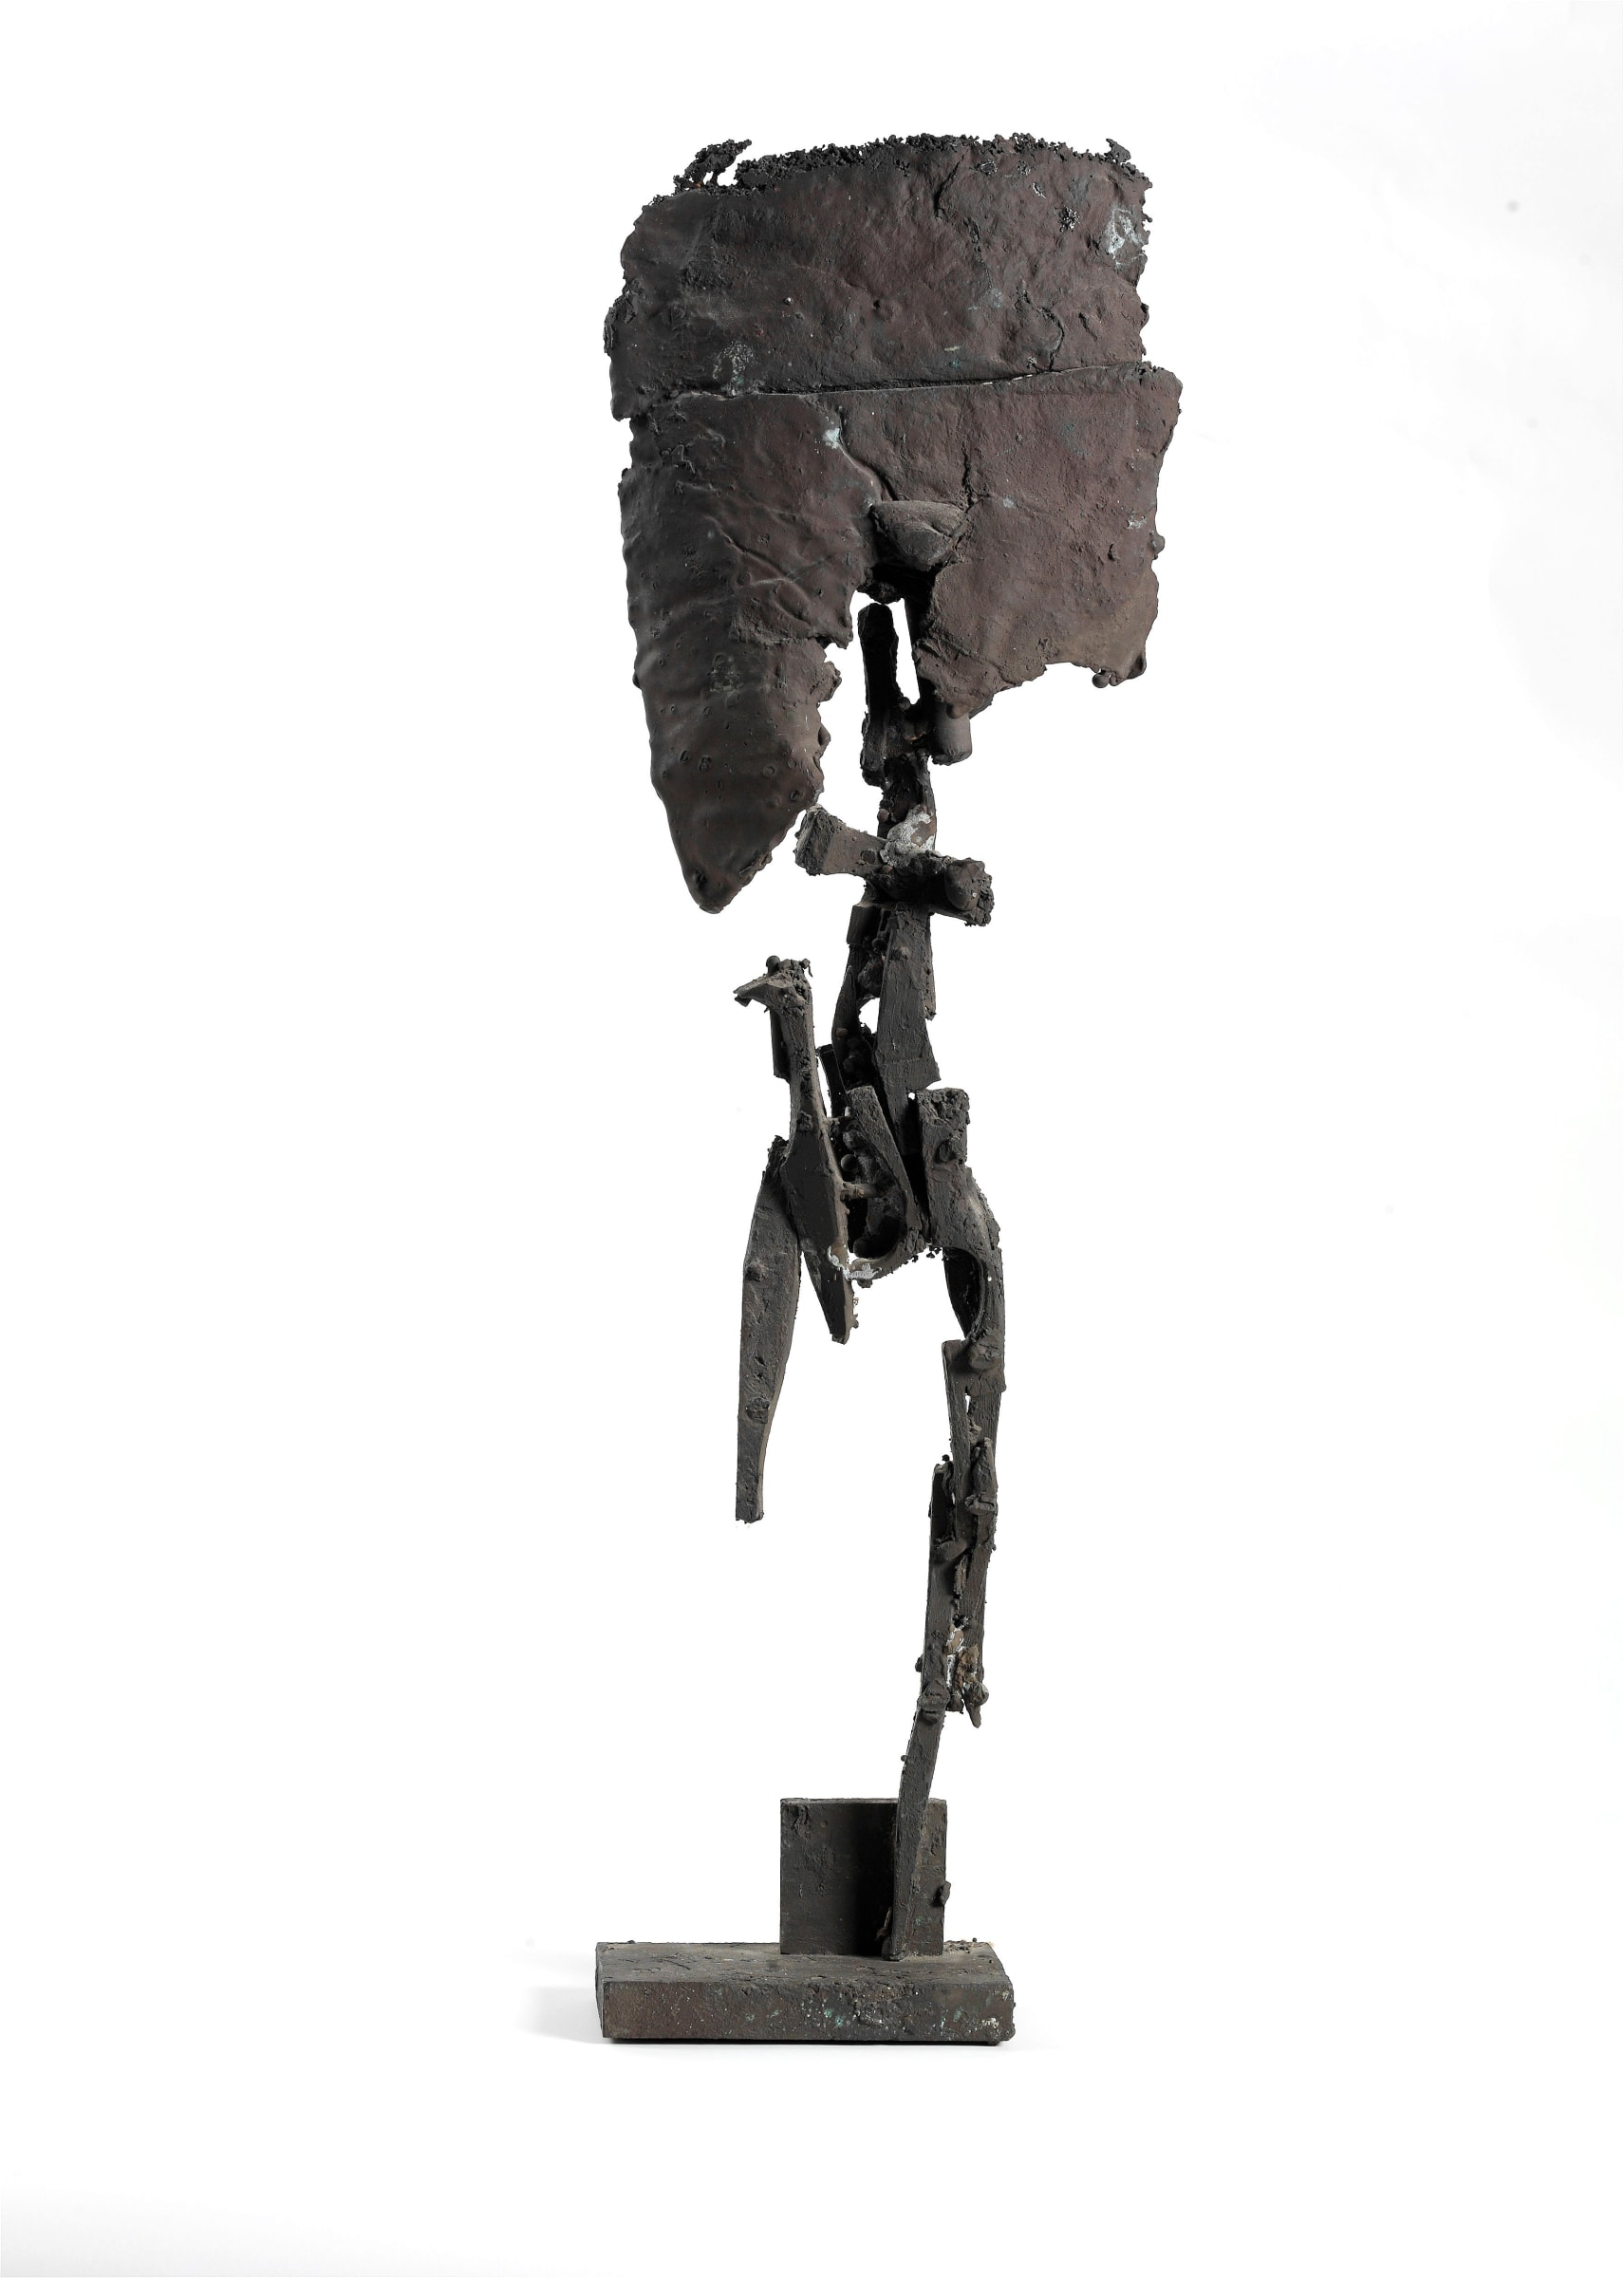 """<span class=""""link fancybox-details-link""""><a href=""""/artists/157-robert-mallary/works/11042-robert-mallary-untitled-standing-figure-1965/"""">View Detail Page</a></span><div class=""""artist""""><span class=""""artist""""><strong>ROBERT MALLARY</strong></span></div><div class=""""title""""><em>Untitled (Standing Figure)</em>, 1965</div><div class=""""medium"""">Cast bronze</div><div class=""""dimensions"""">67.3 x 23 x 10.2 cm<br /> 26 ½ x 9 x 4 inches</div>"""